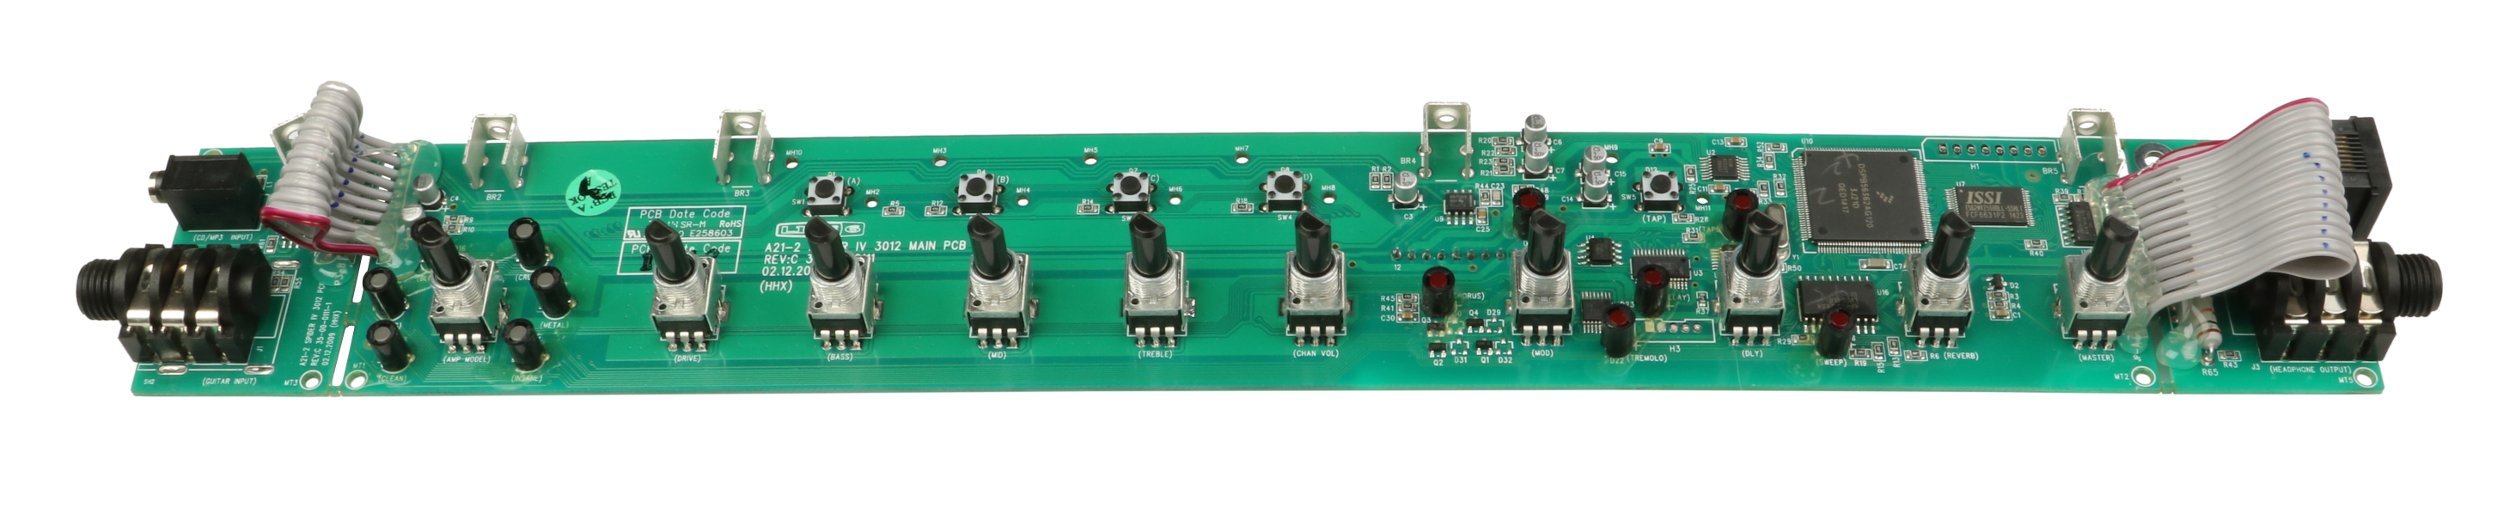 Guitar/mp3 Input PCB for Spider IV Guitar Amplifier